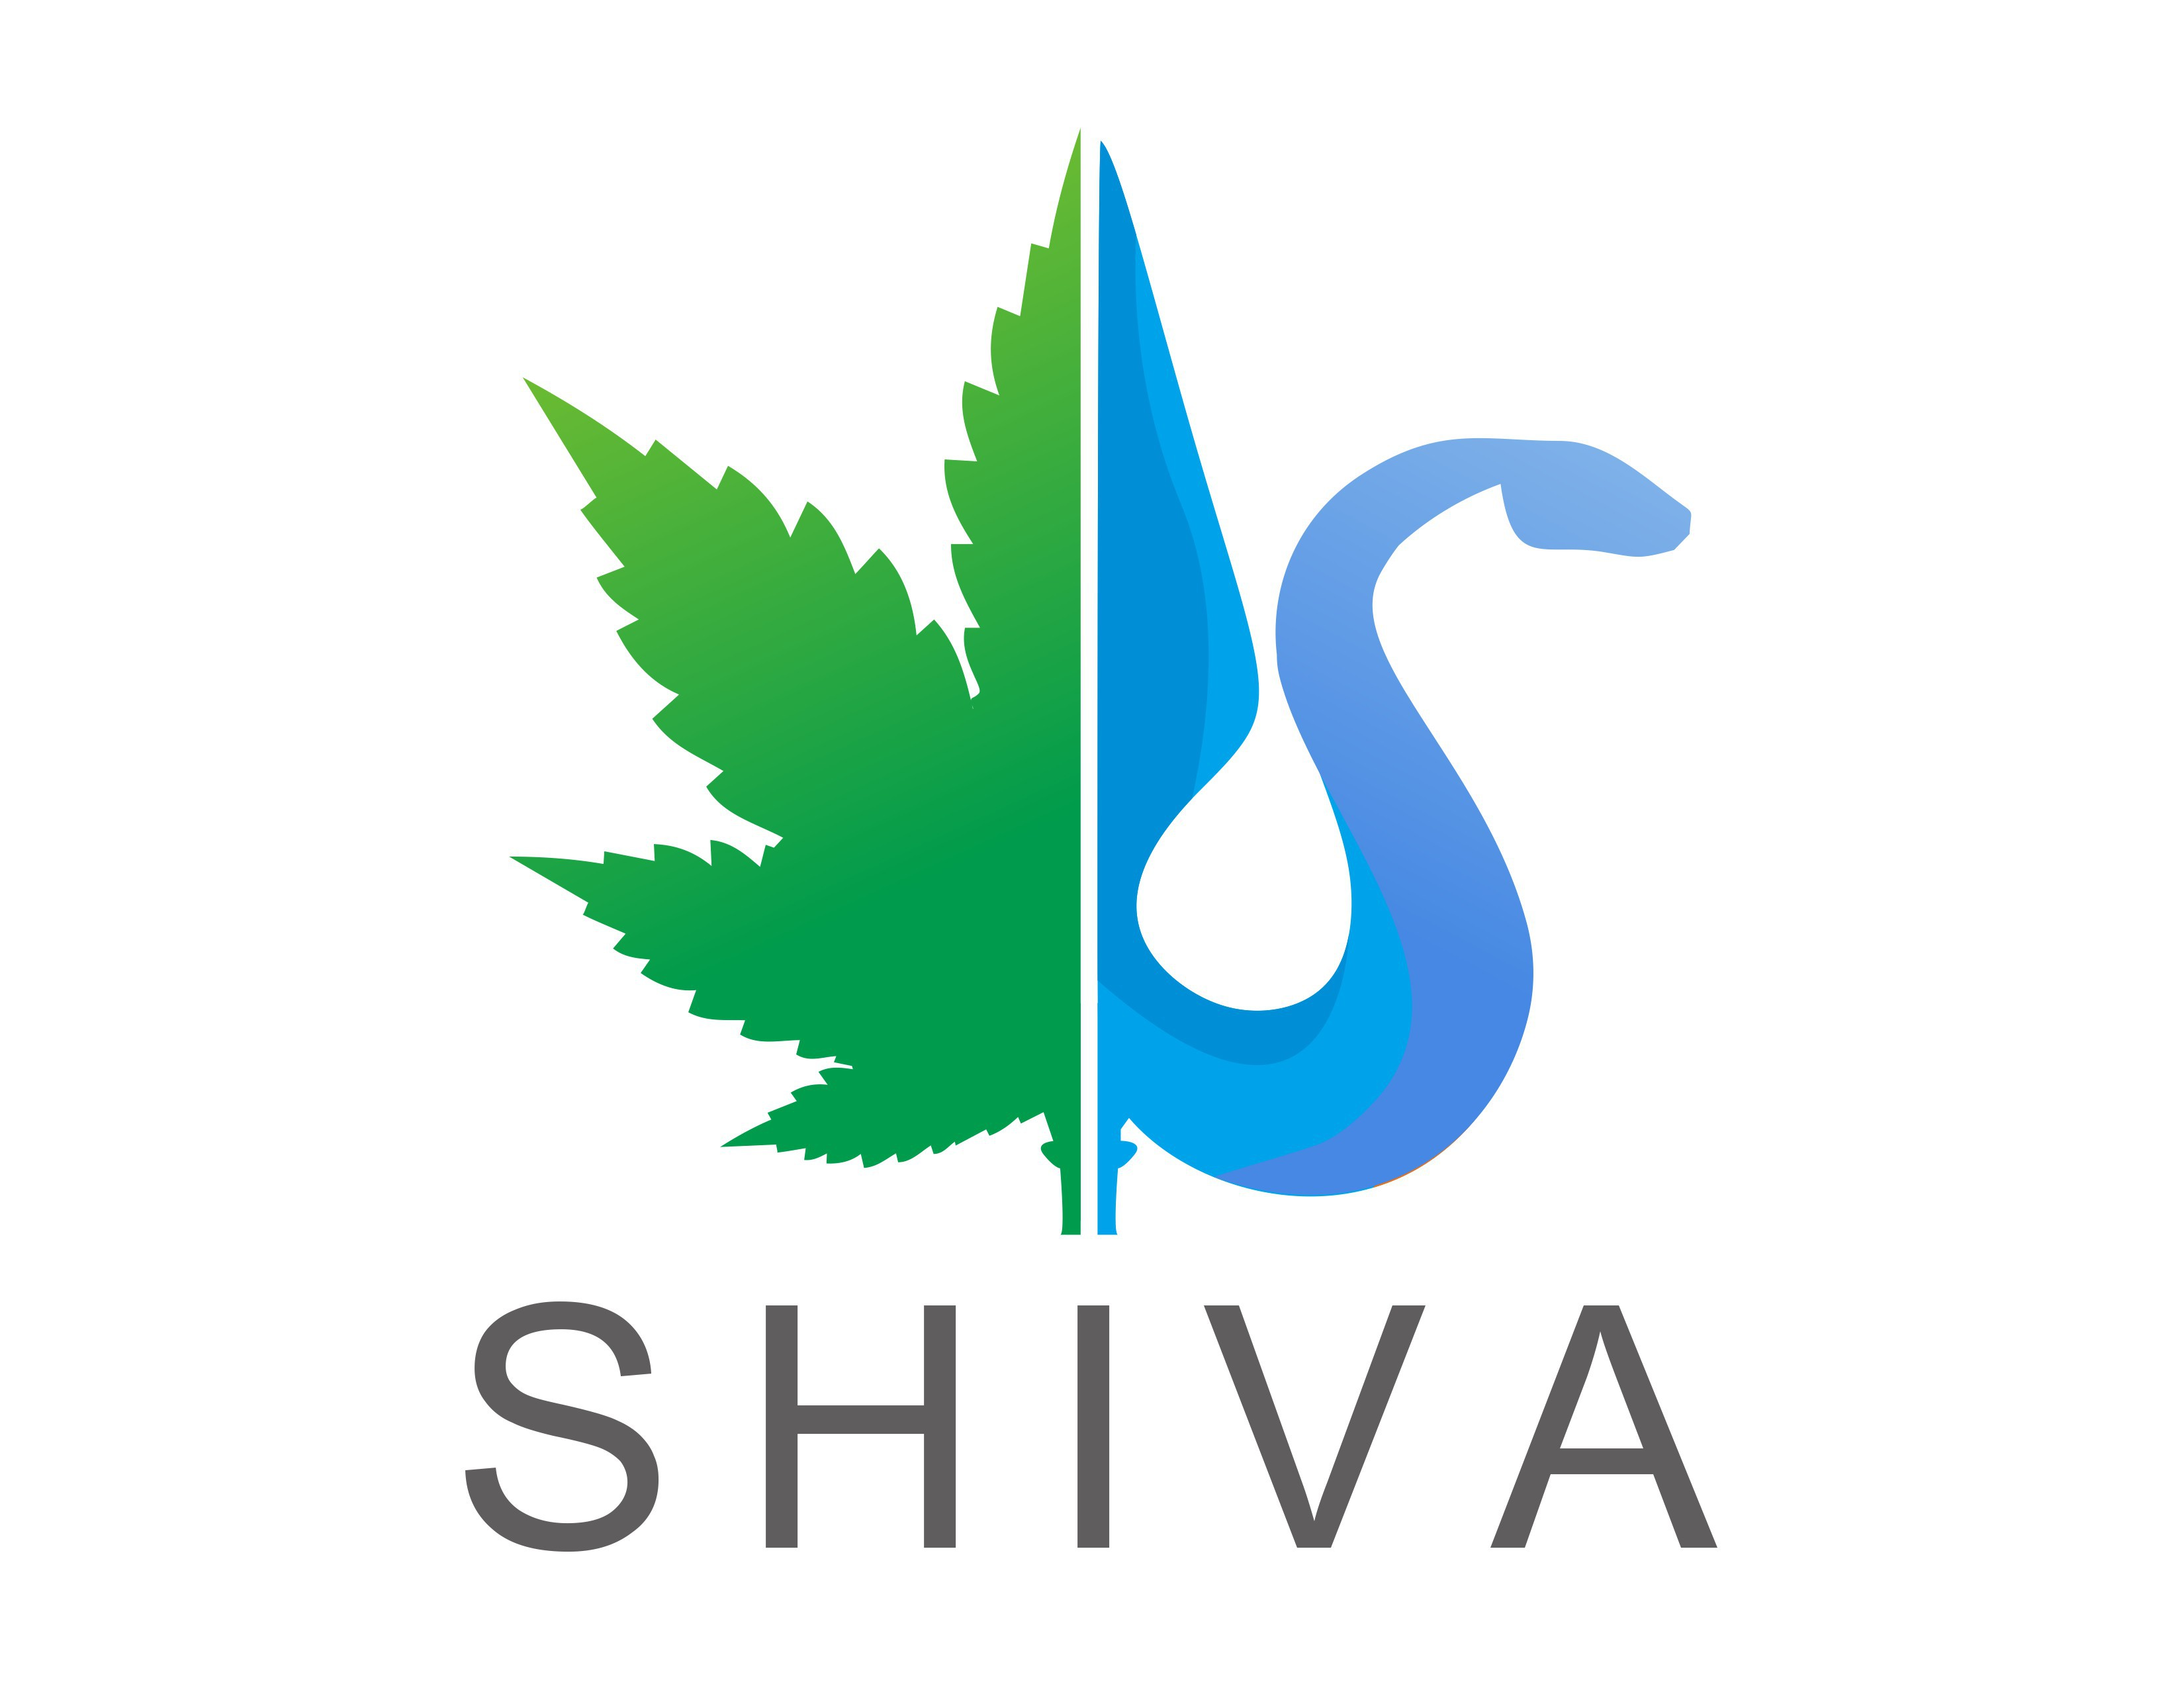 Cool logo for cannabis products